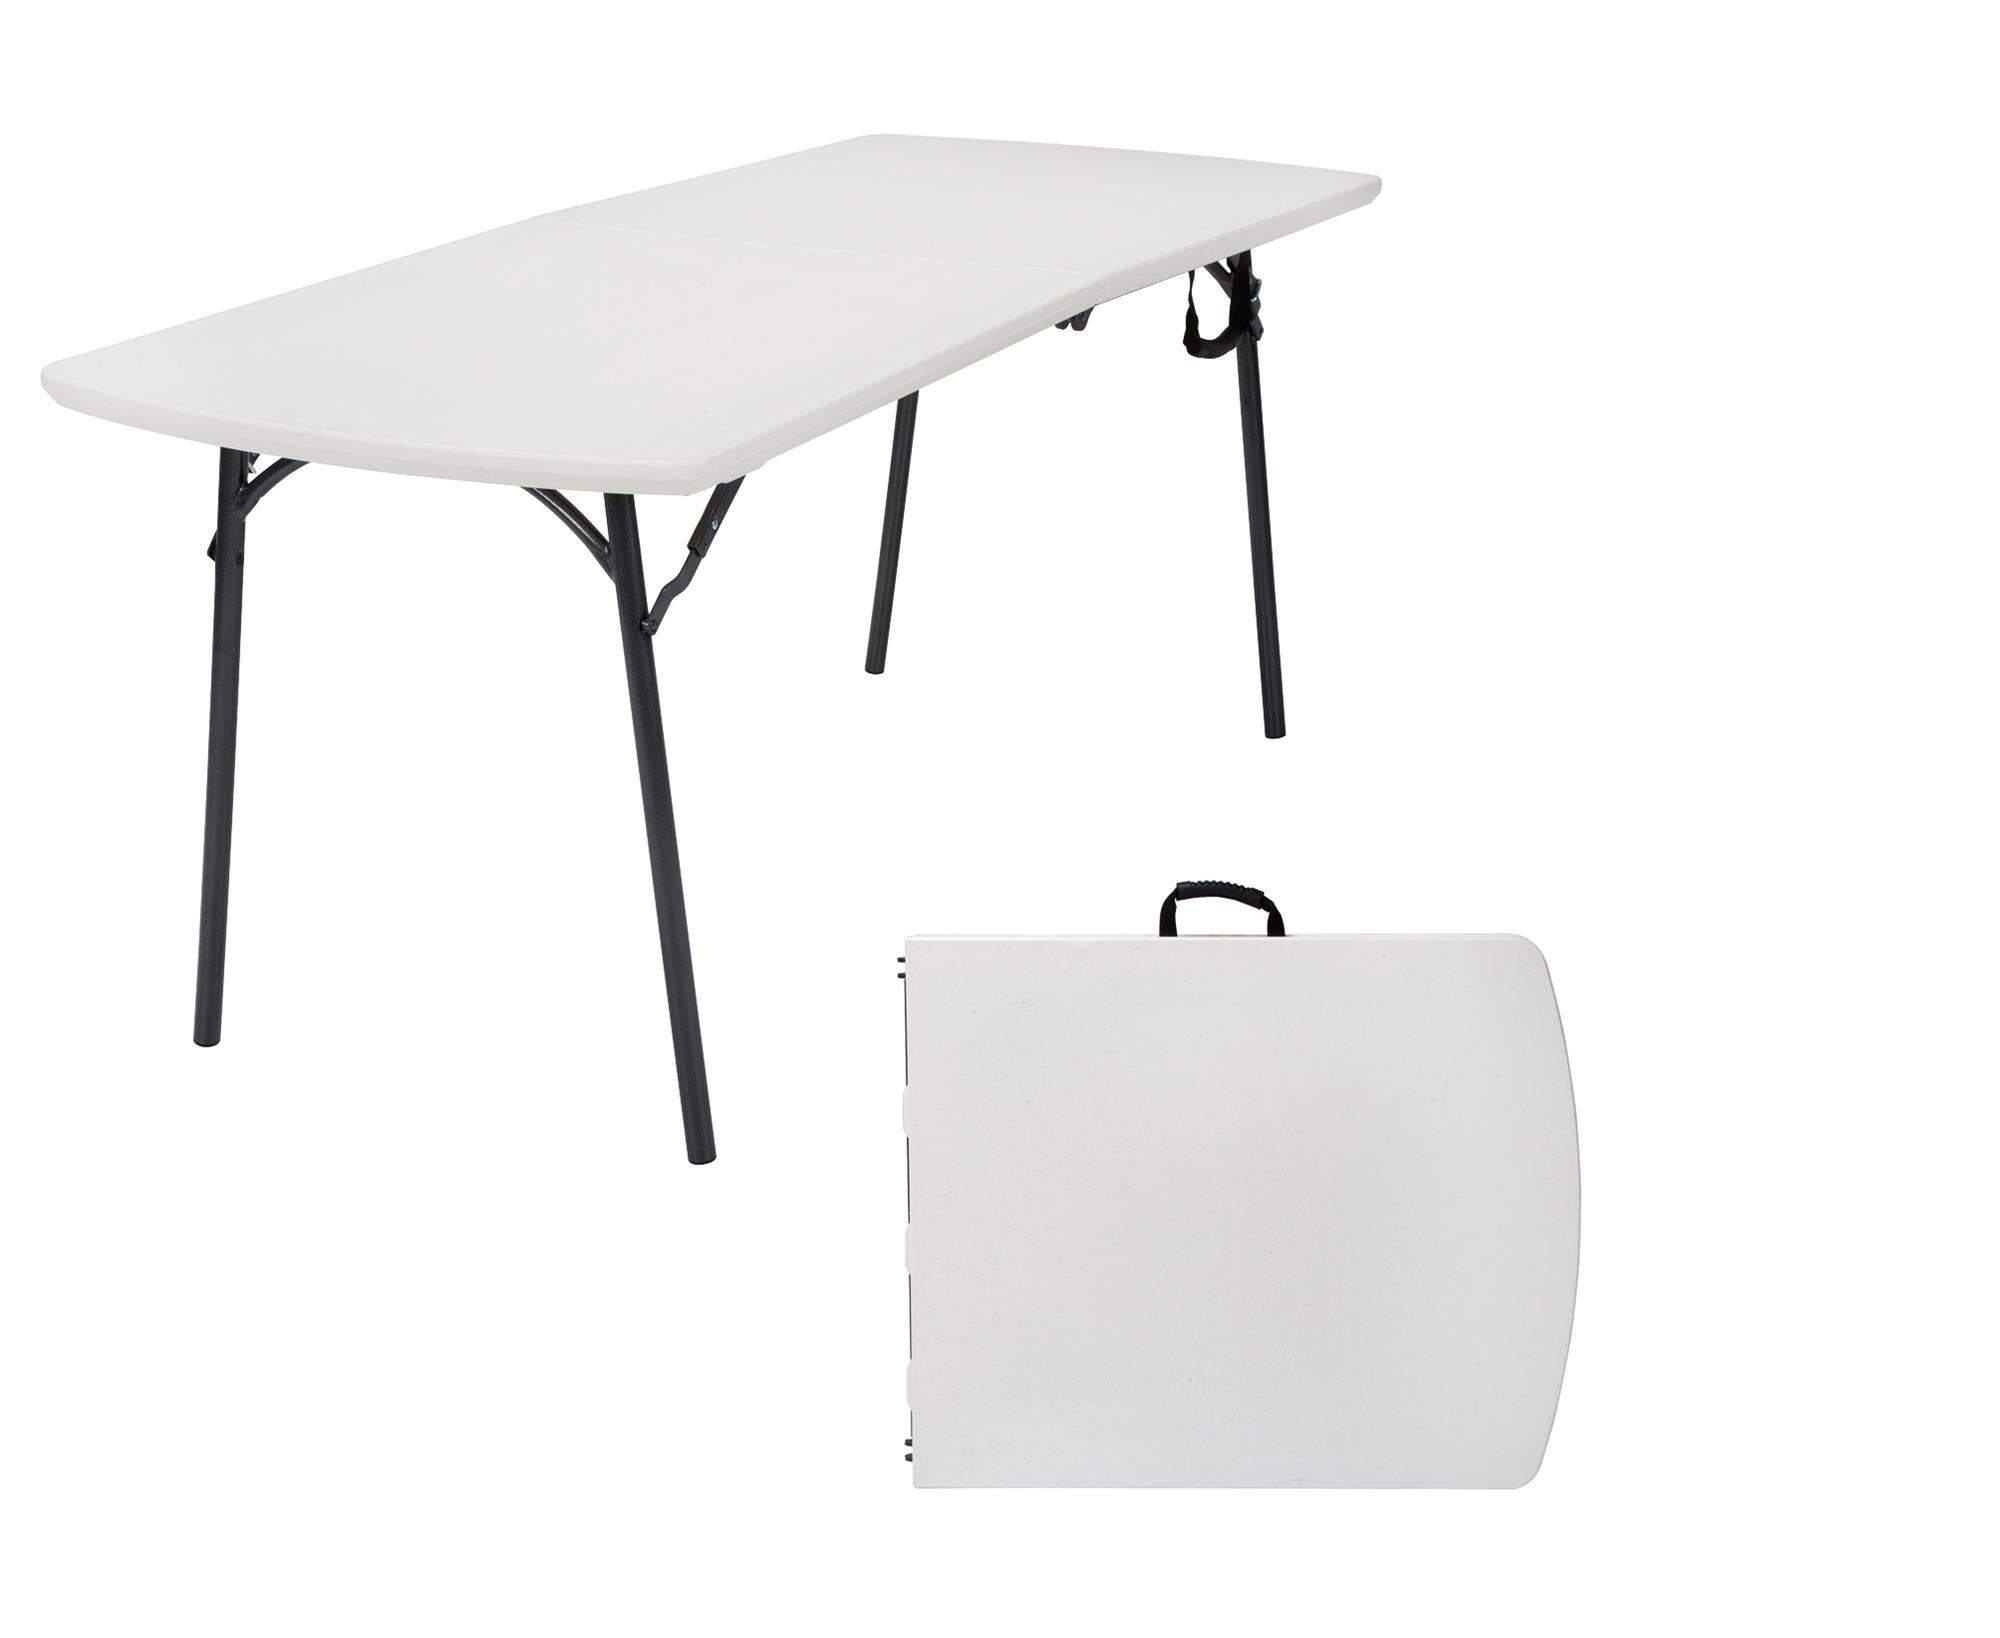 Cosco 14687WSP1X Products Diamond Series 300 lb. Weight Capacity Folding Table, 6' X 30'', White by Cosco